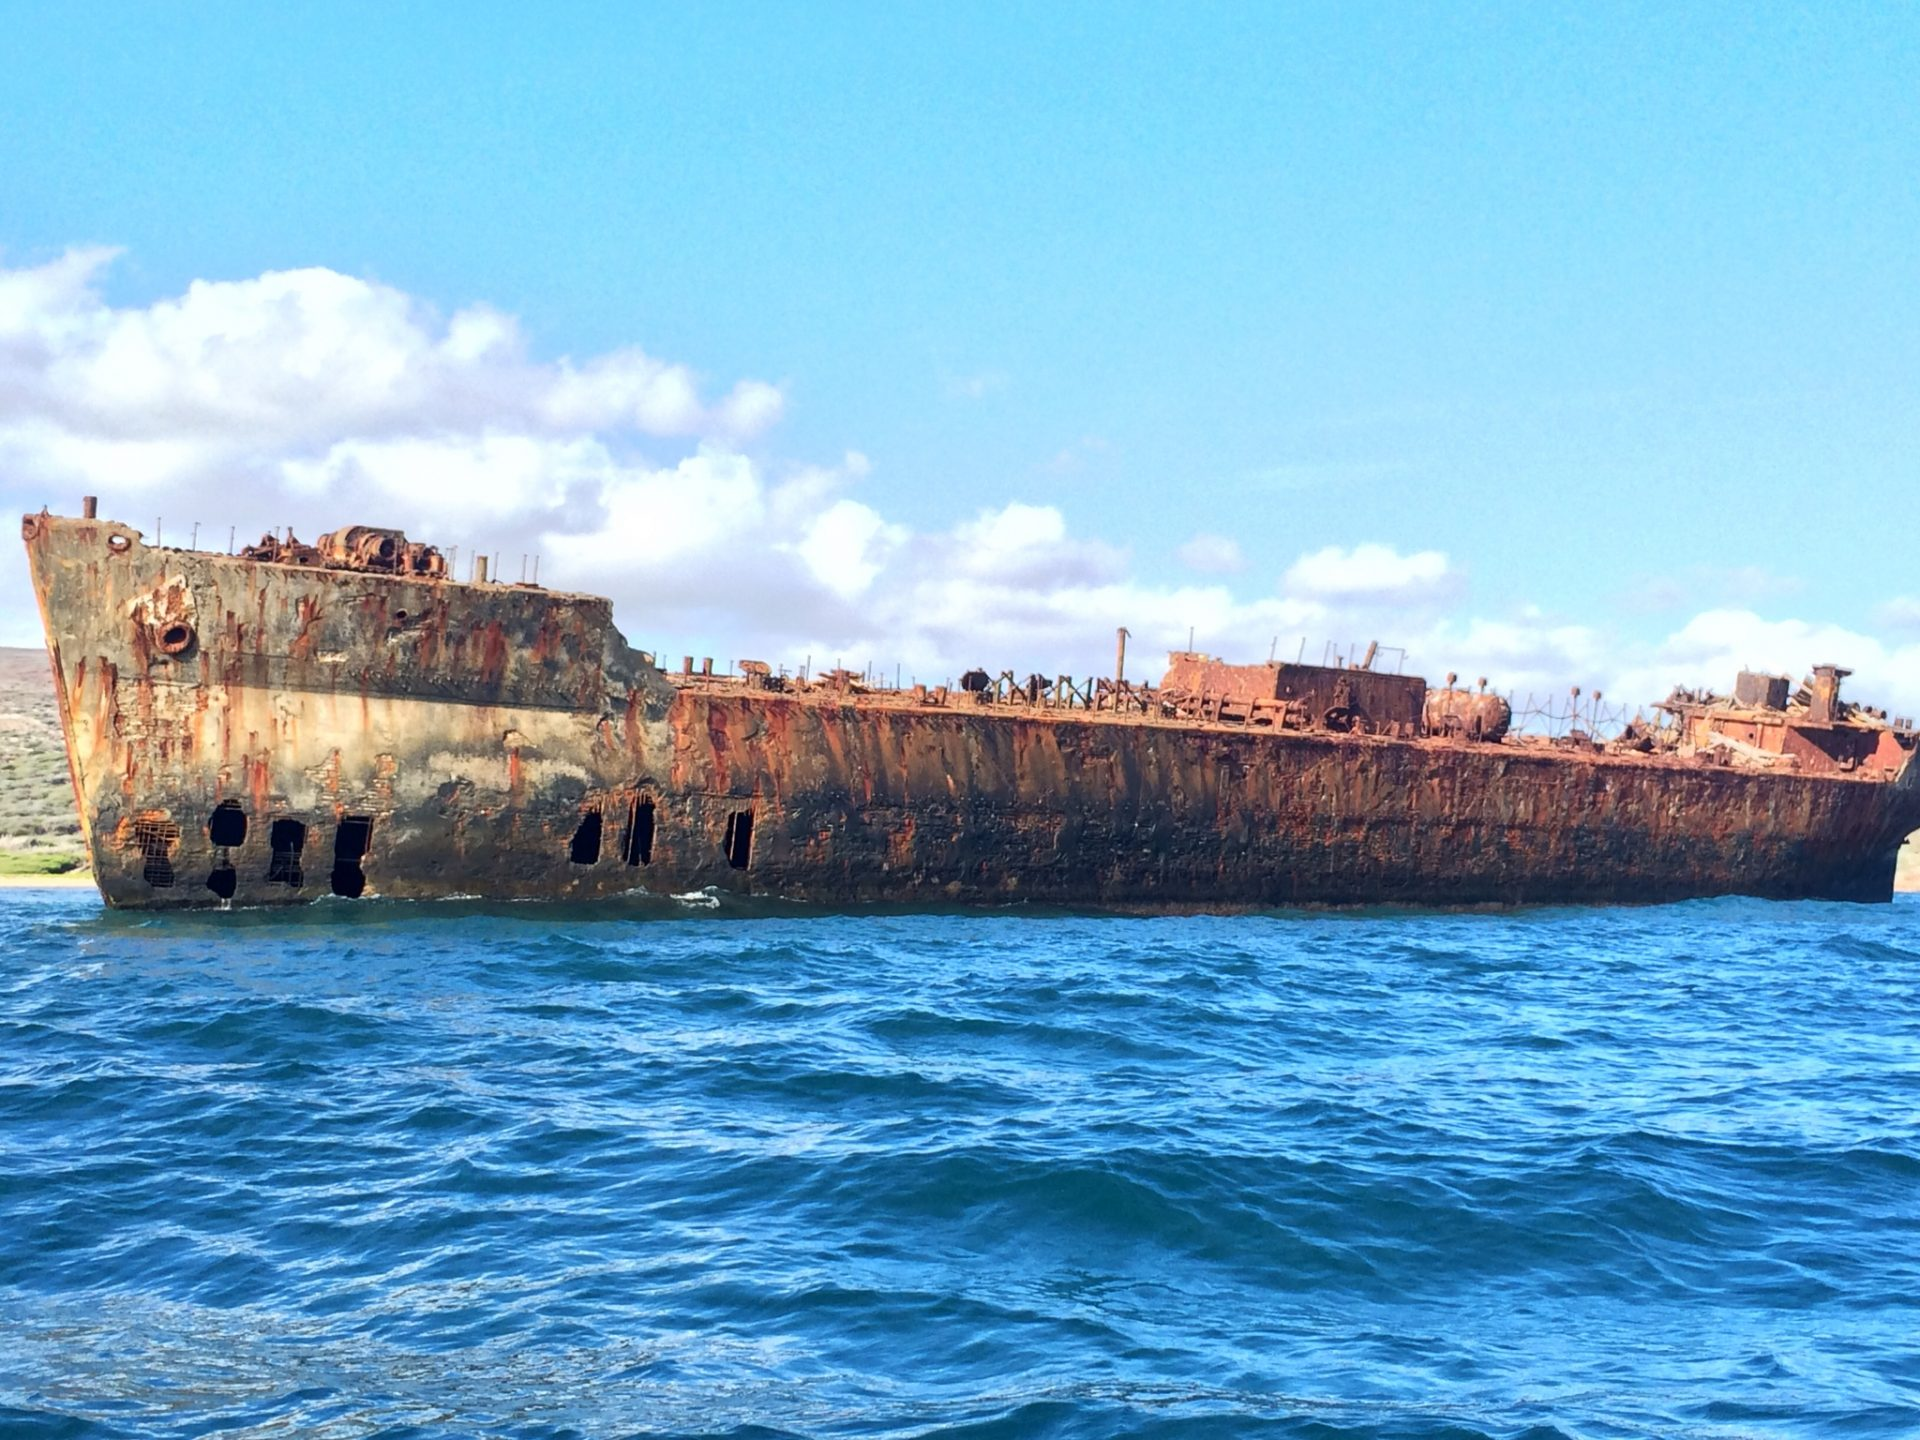 Have you ever considered a boat trip around the island of Lanai?